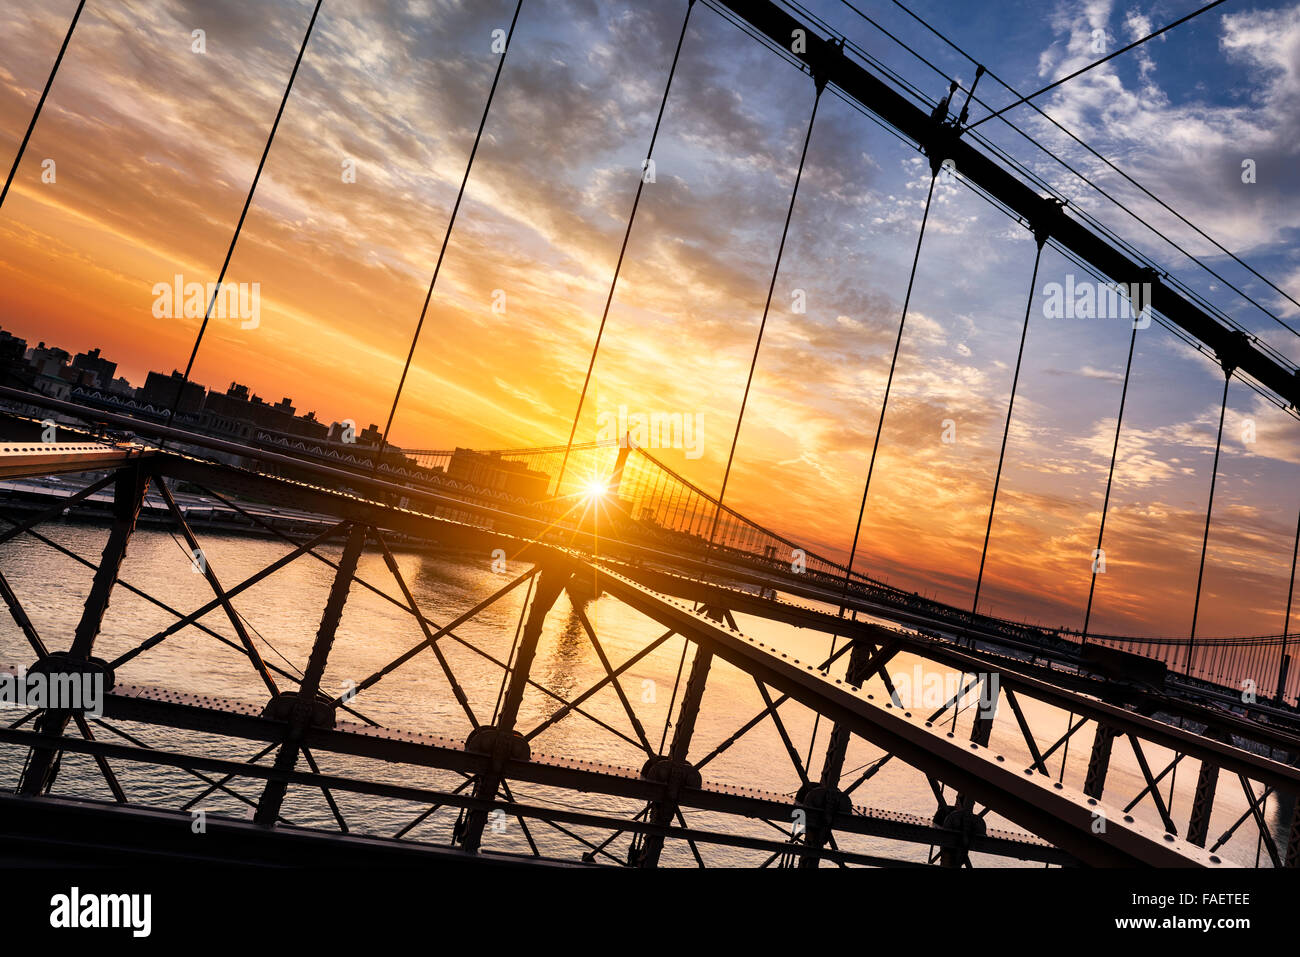 New York City, USA, early in the morning from the famous Brooklyn Bridge, view on Manhattan bridge - Stock Image